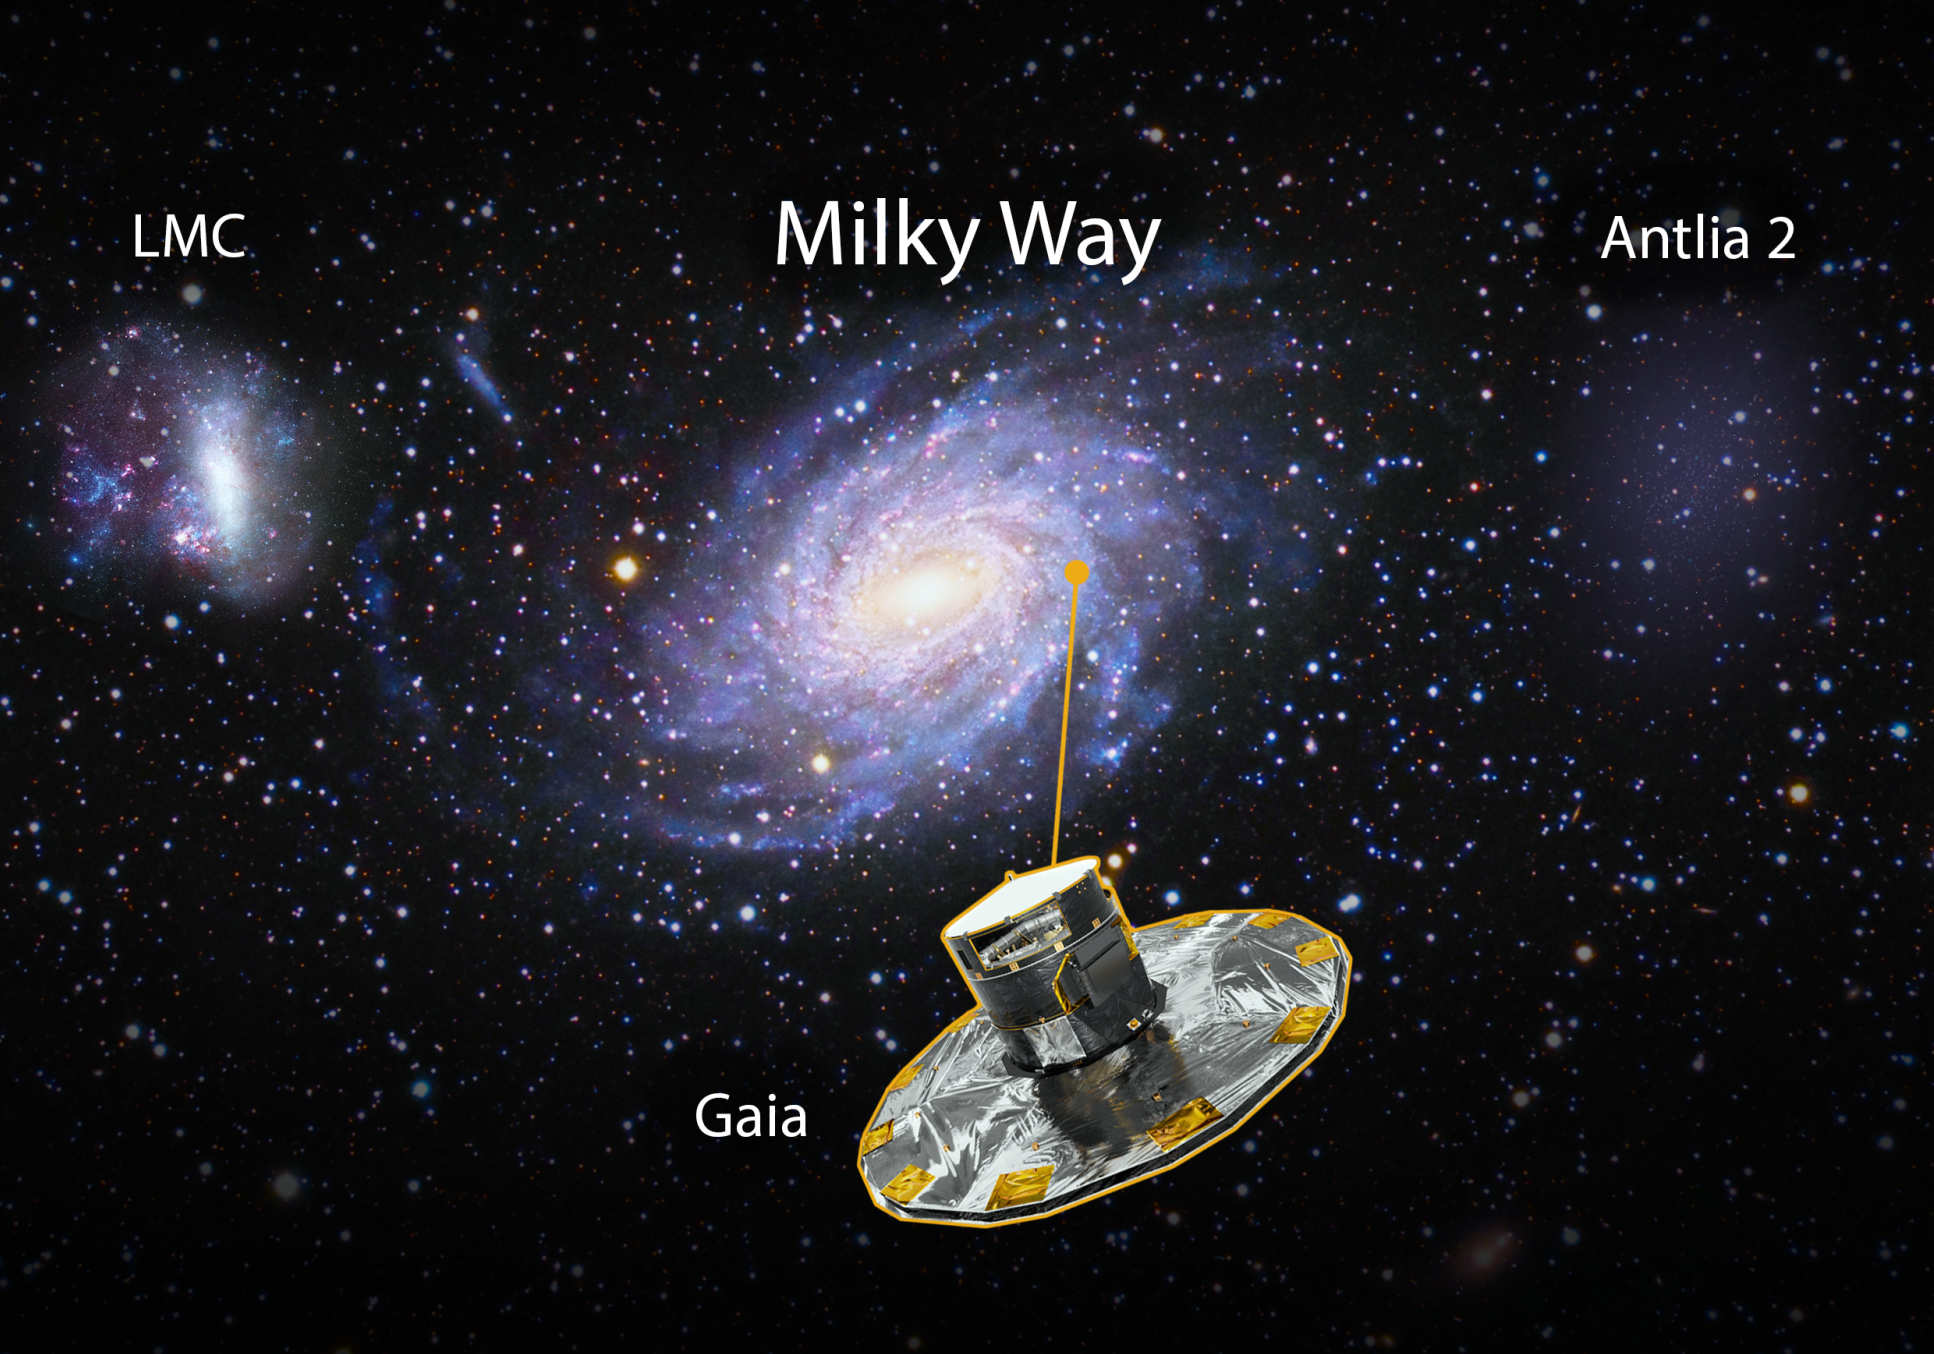 Illustration of the galaxies and the Gaia satellite's position in the Milky Way